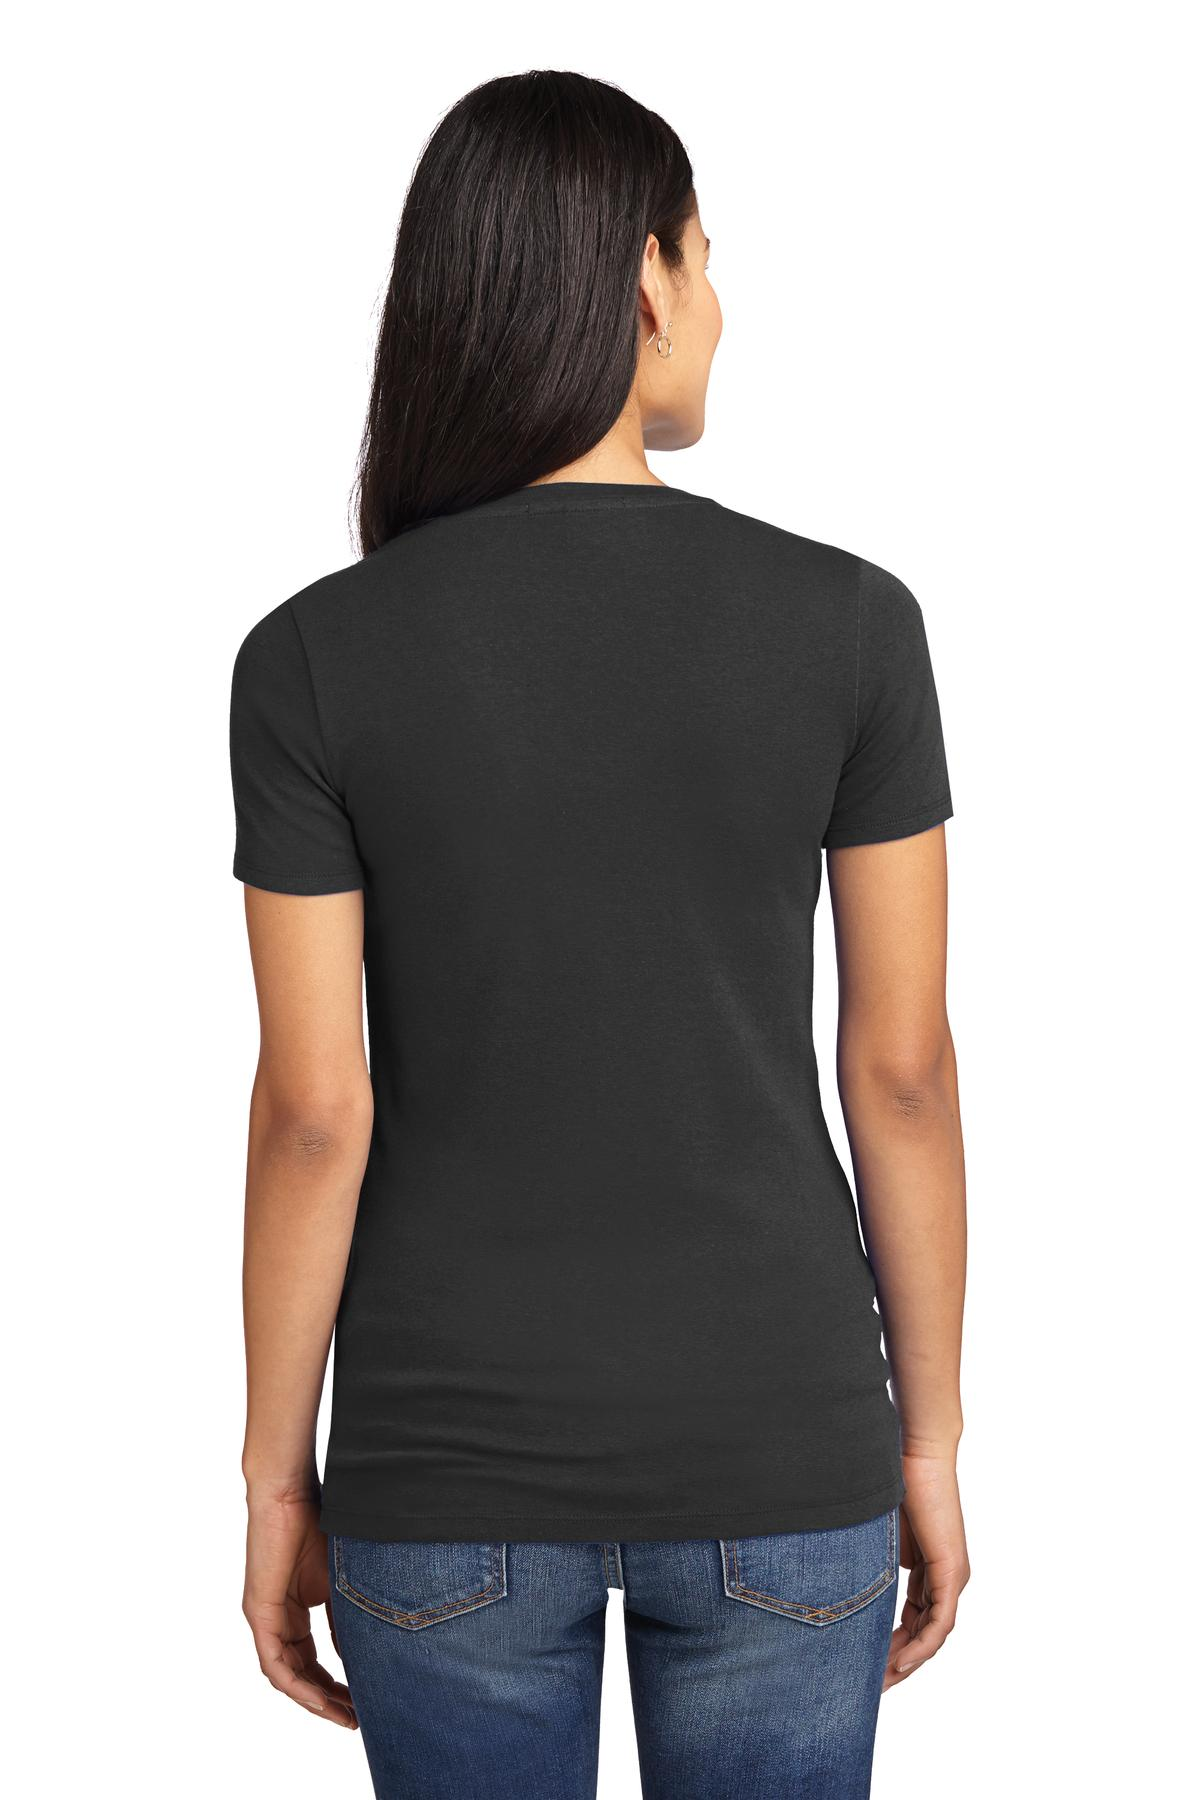 55d6a45c2fa9 ... Port Authority ® Ladies Concept Stretch V-Neck Tee. LM1005. Previous;  Next